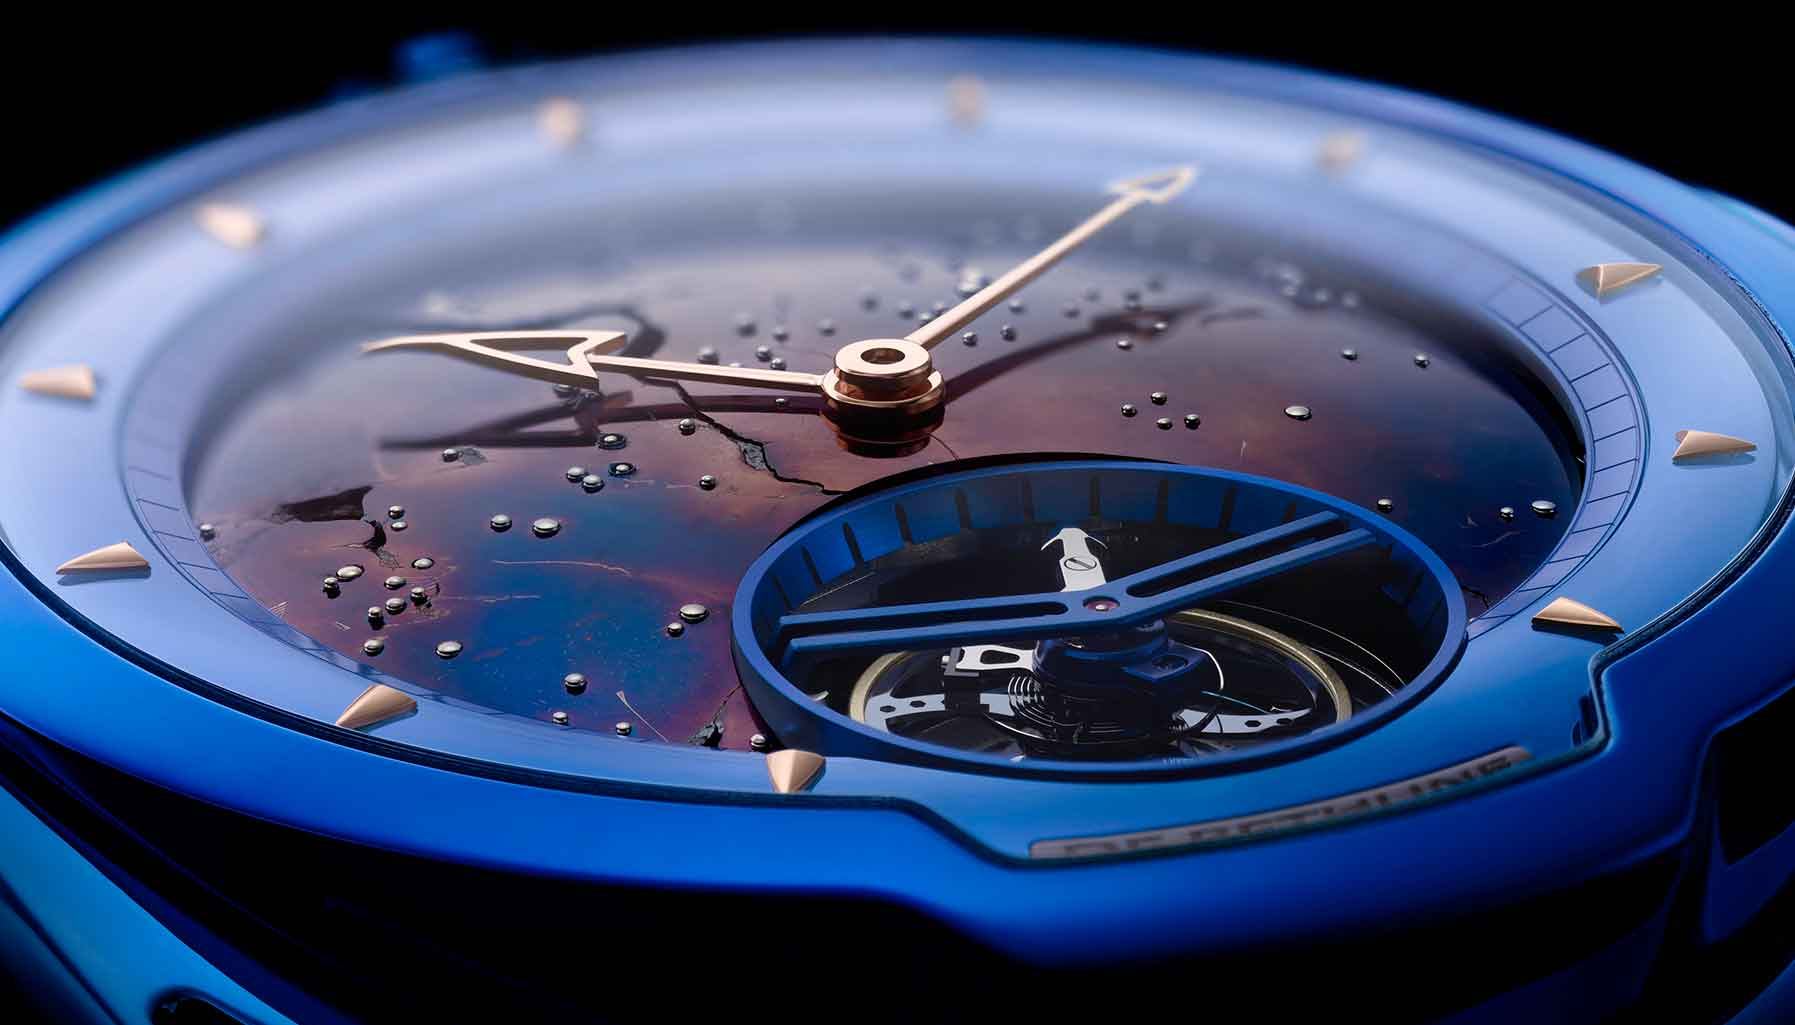 A star is born: The De Bethune DB28 Kind of Blue Tourbillon Meteorite